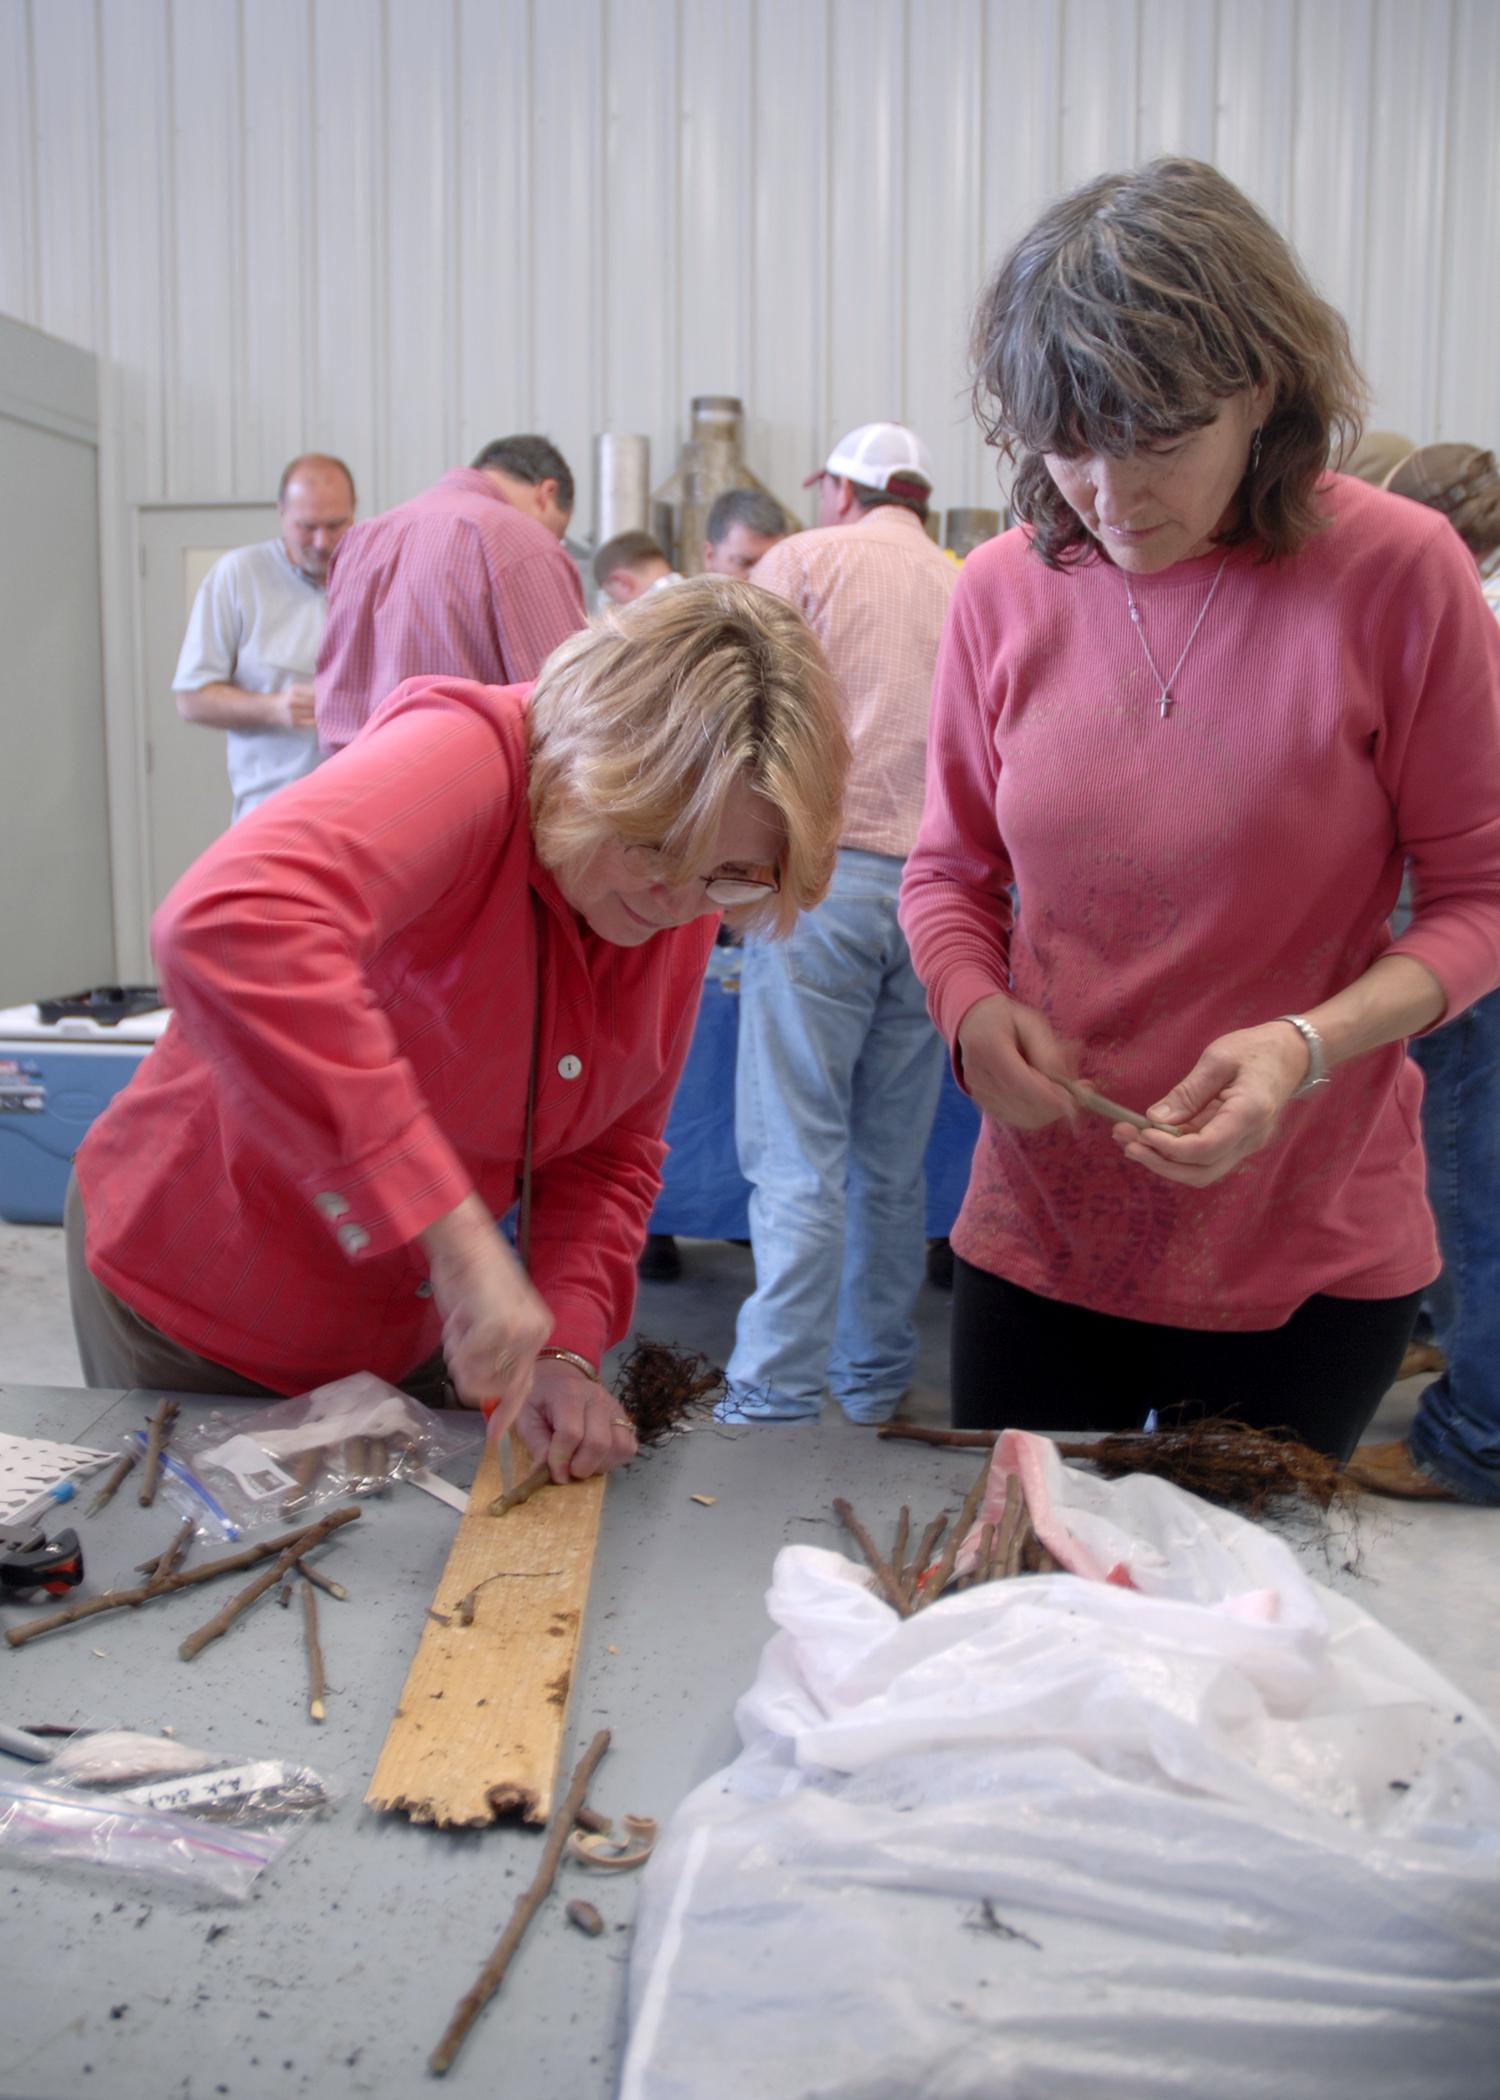 Starkville resident Kathy Elmore, left, cuts a hole into a rootstock during a fruit-grafting workshop on March 26, 2015, at the Northeast Mississippi Research and Extension Center in Verona as Donna Miller of Starkville looks on. (Photo by MSU Ag Communications/Nathan Gregory)